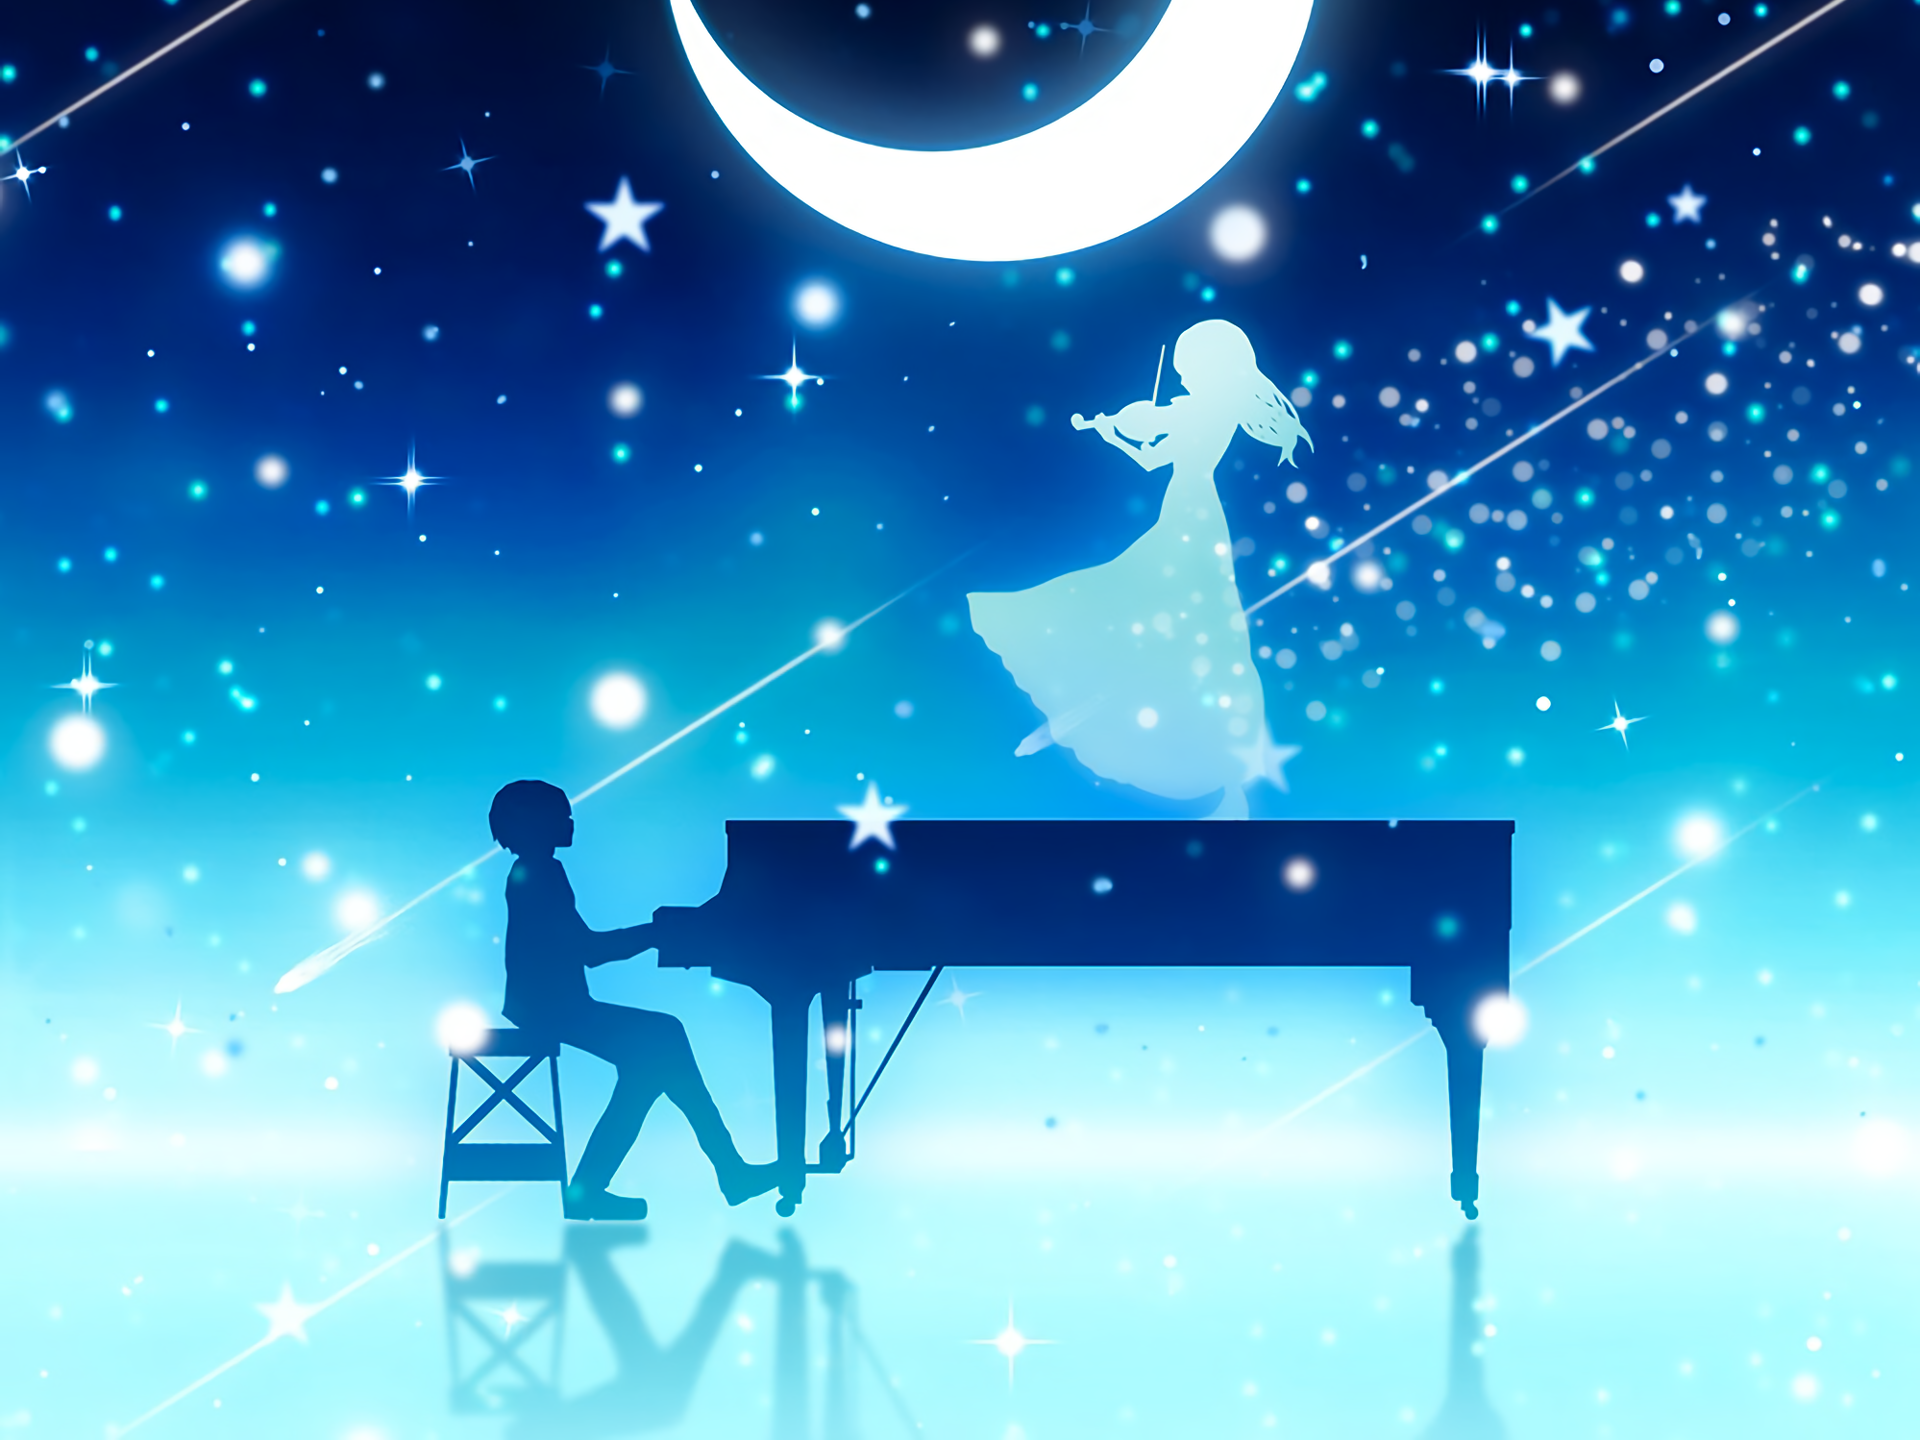 Wallpapers ID:780830